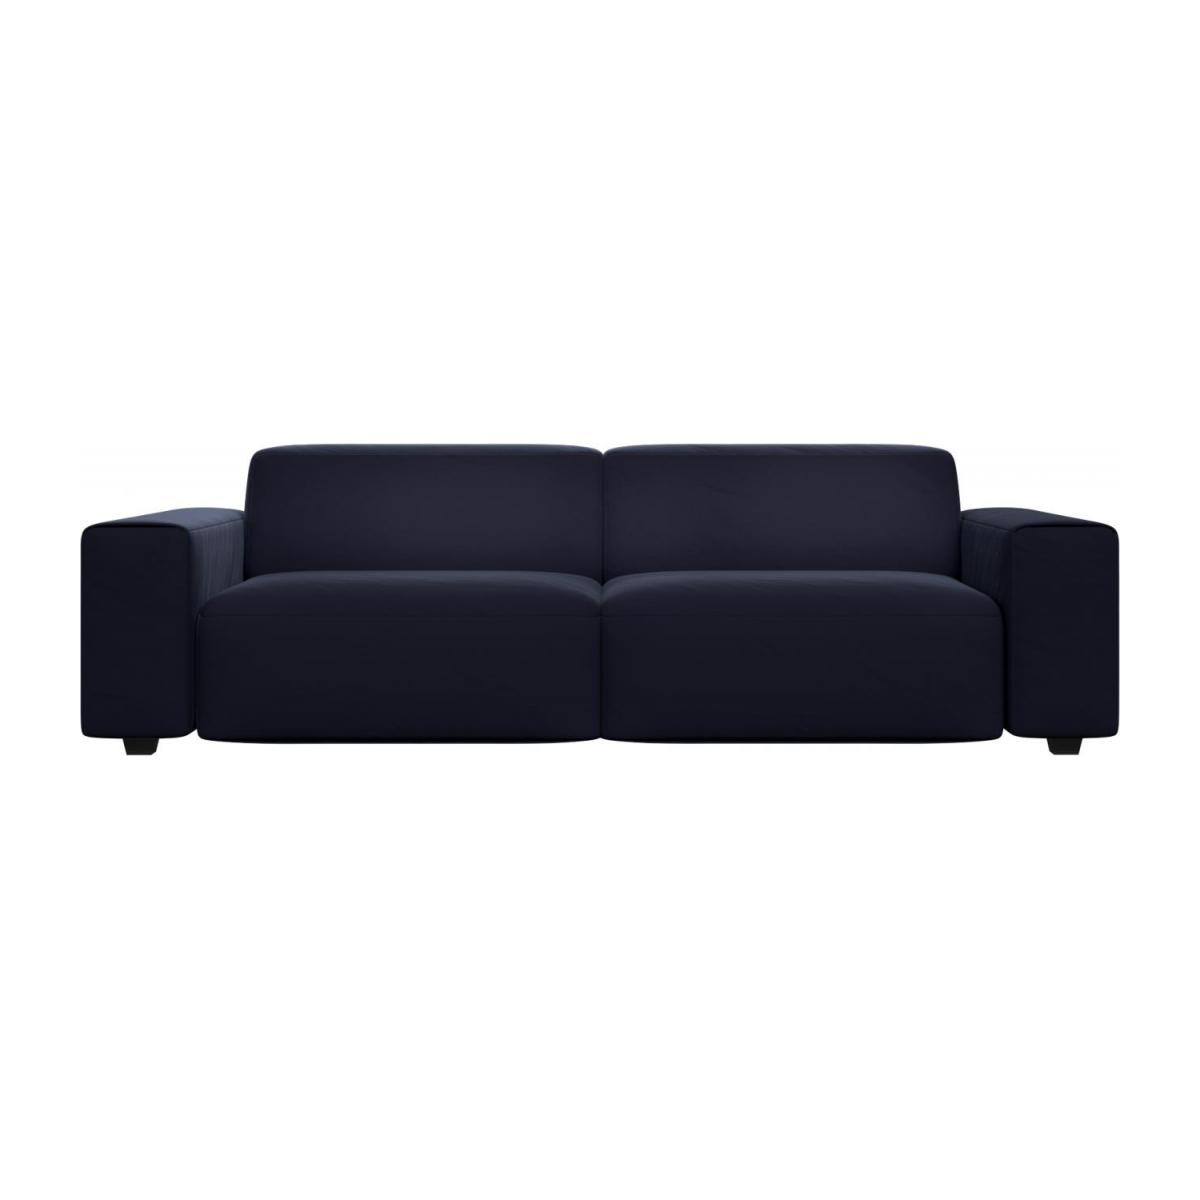 4 seater sofa in Super Velvet fabric, dark blue n°2